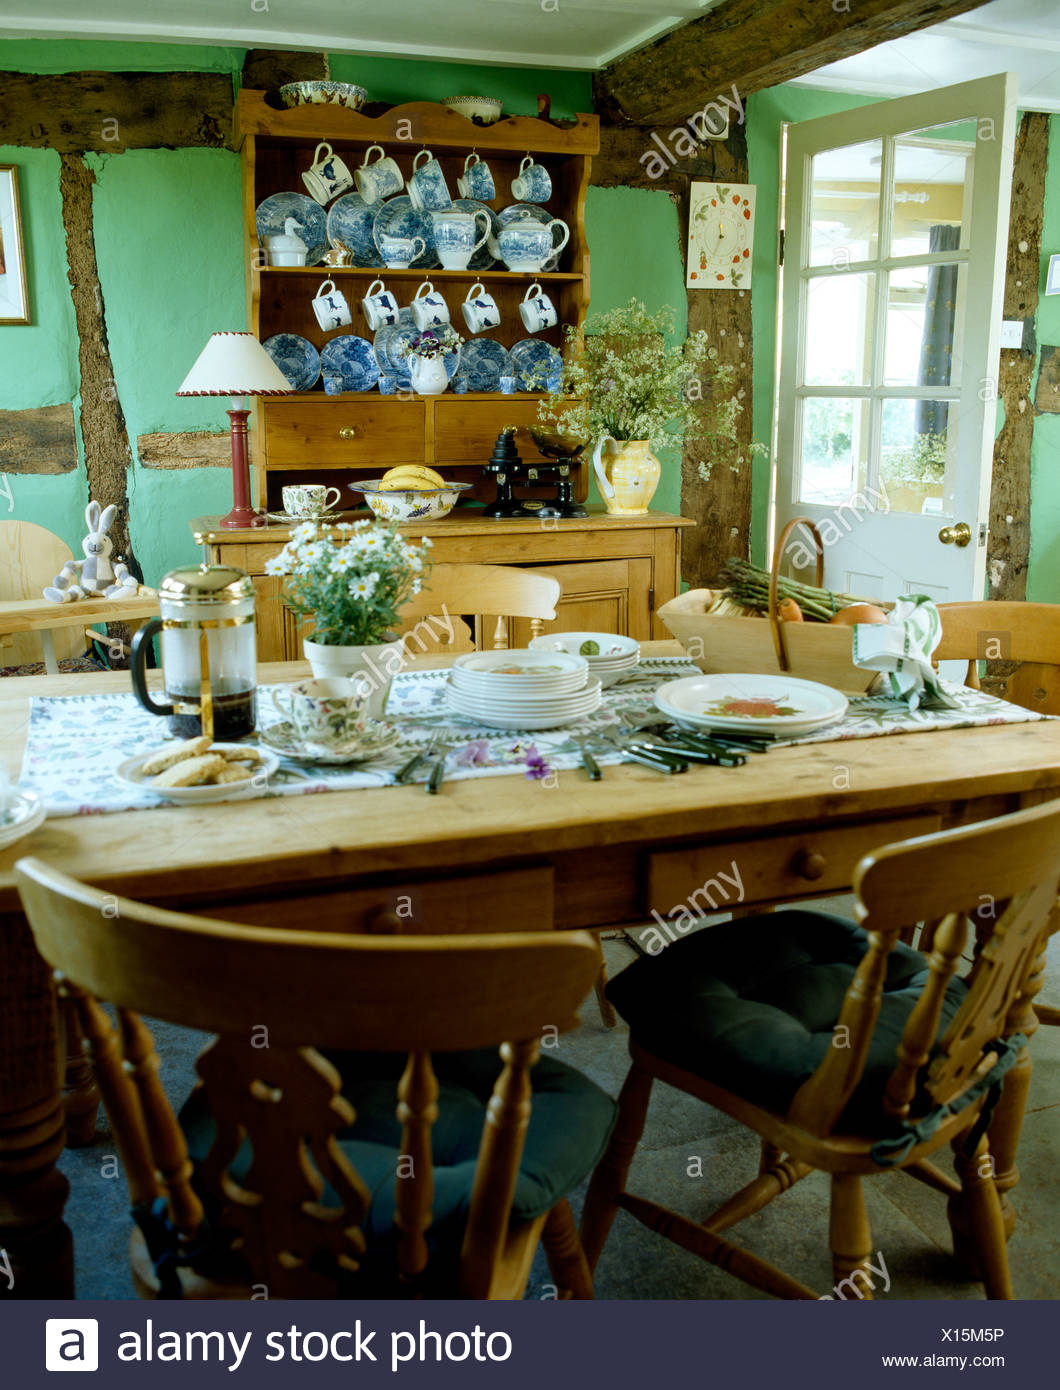 Breakfast Chairs Pine Chairs At Pine Table Set For Breakfast In Pale Green Country